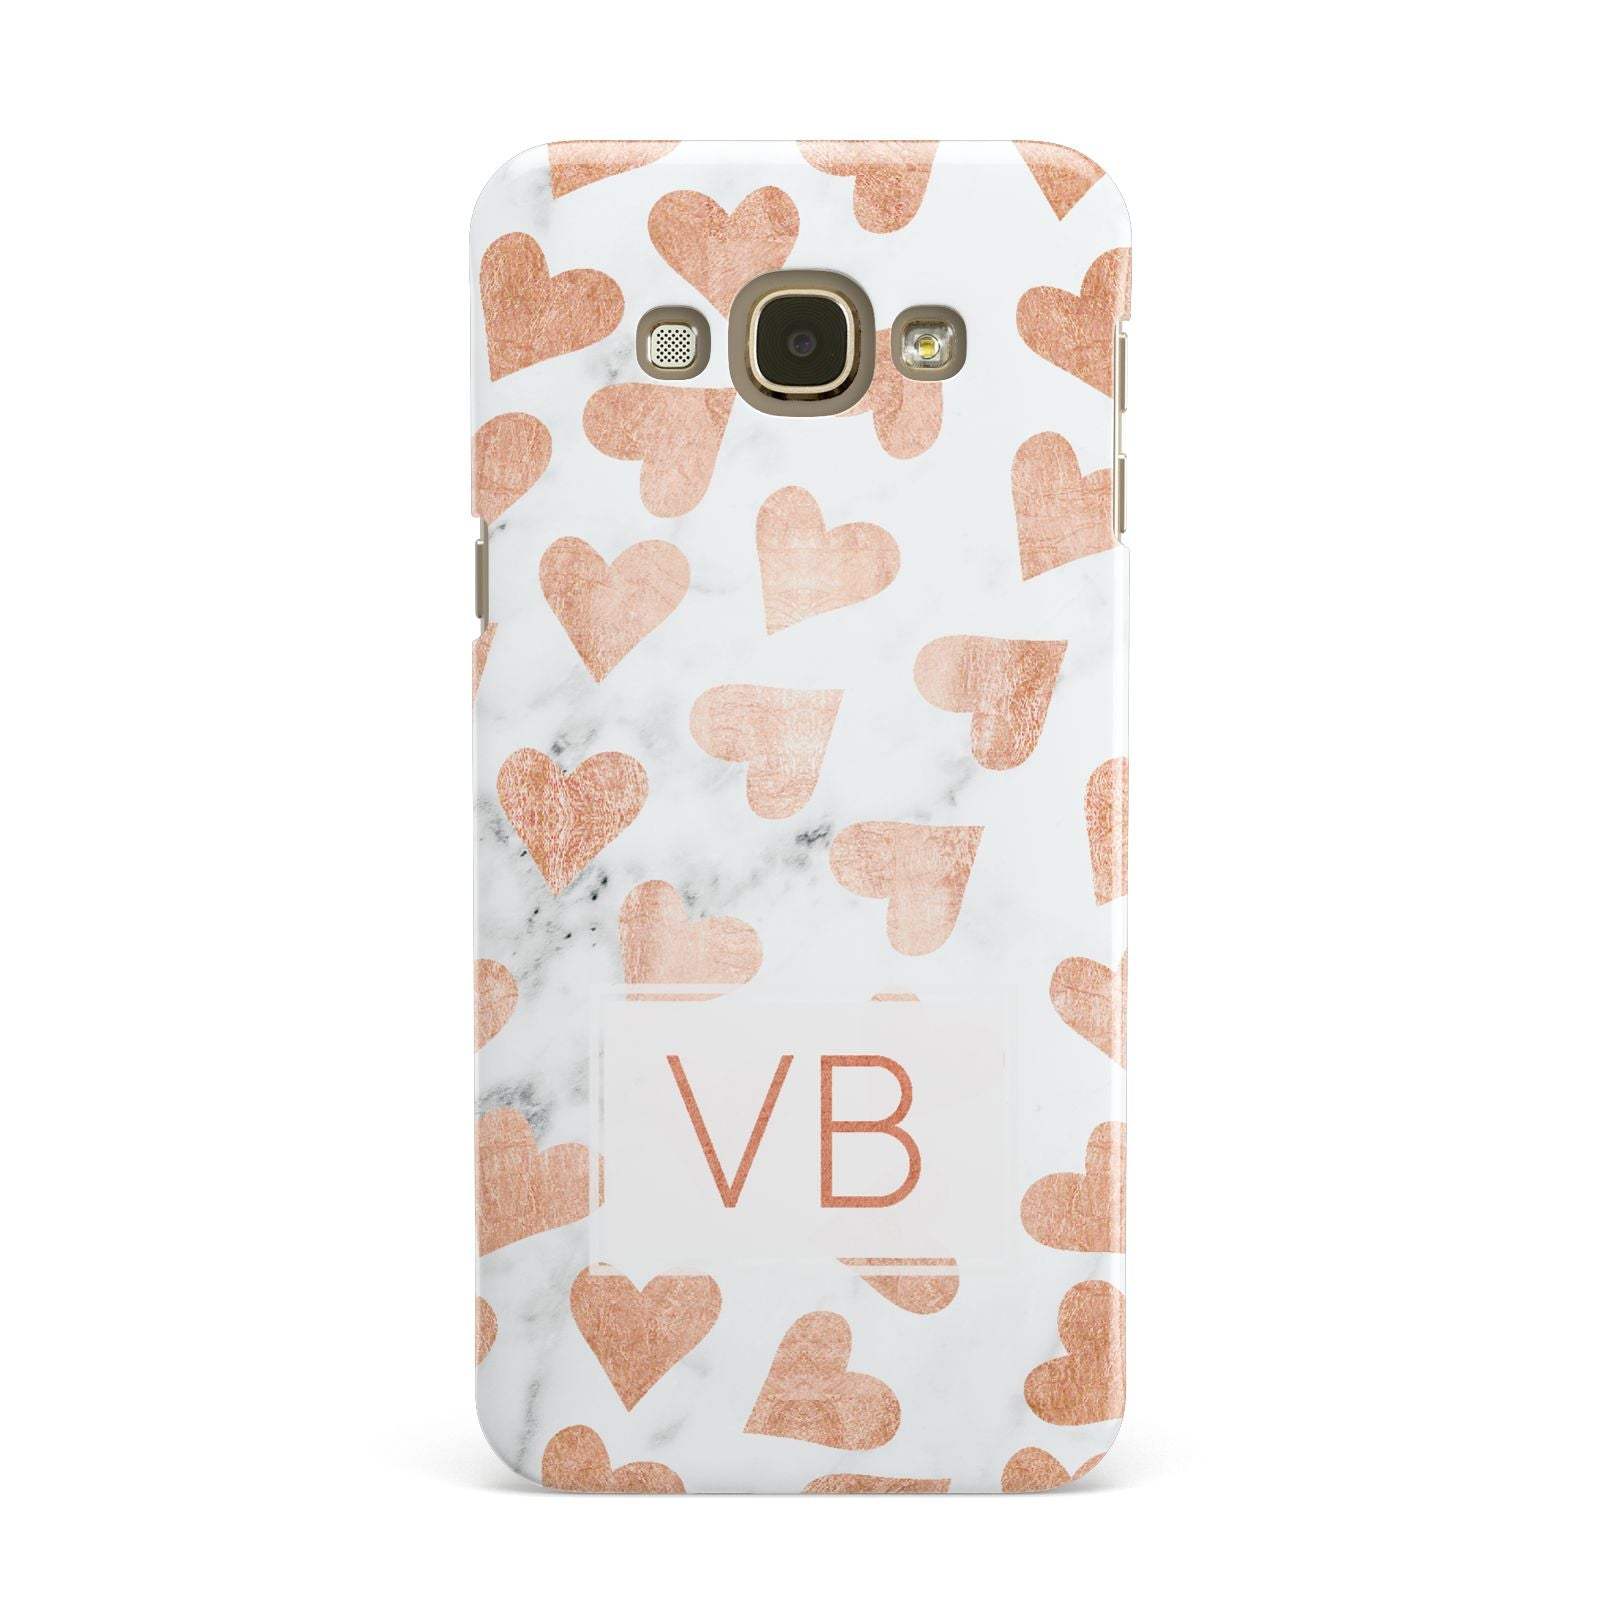 Personalised Heart Initialled Marble Samsung Galaxy A8 Case